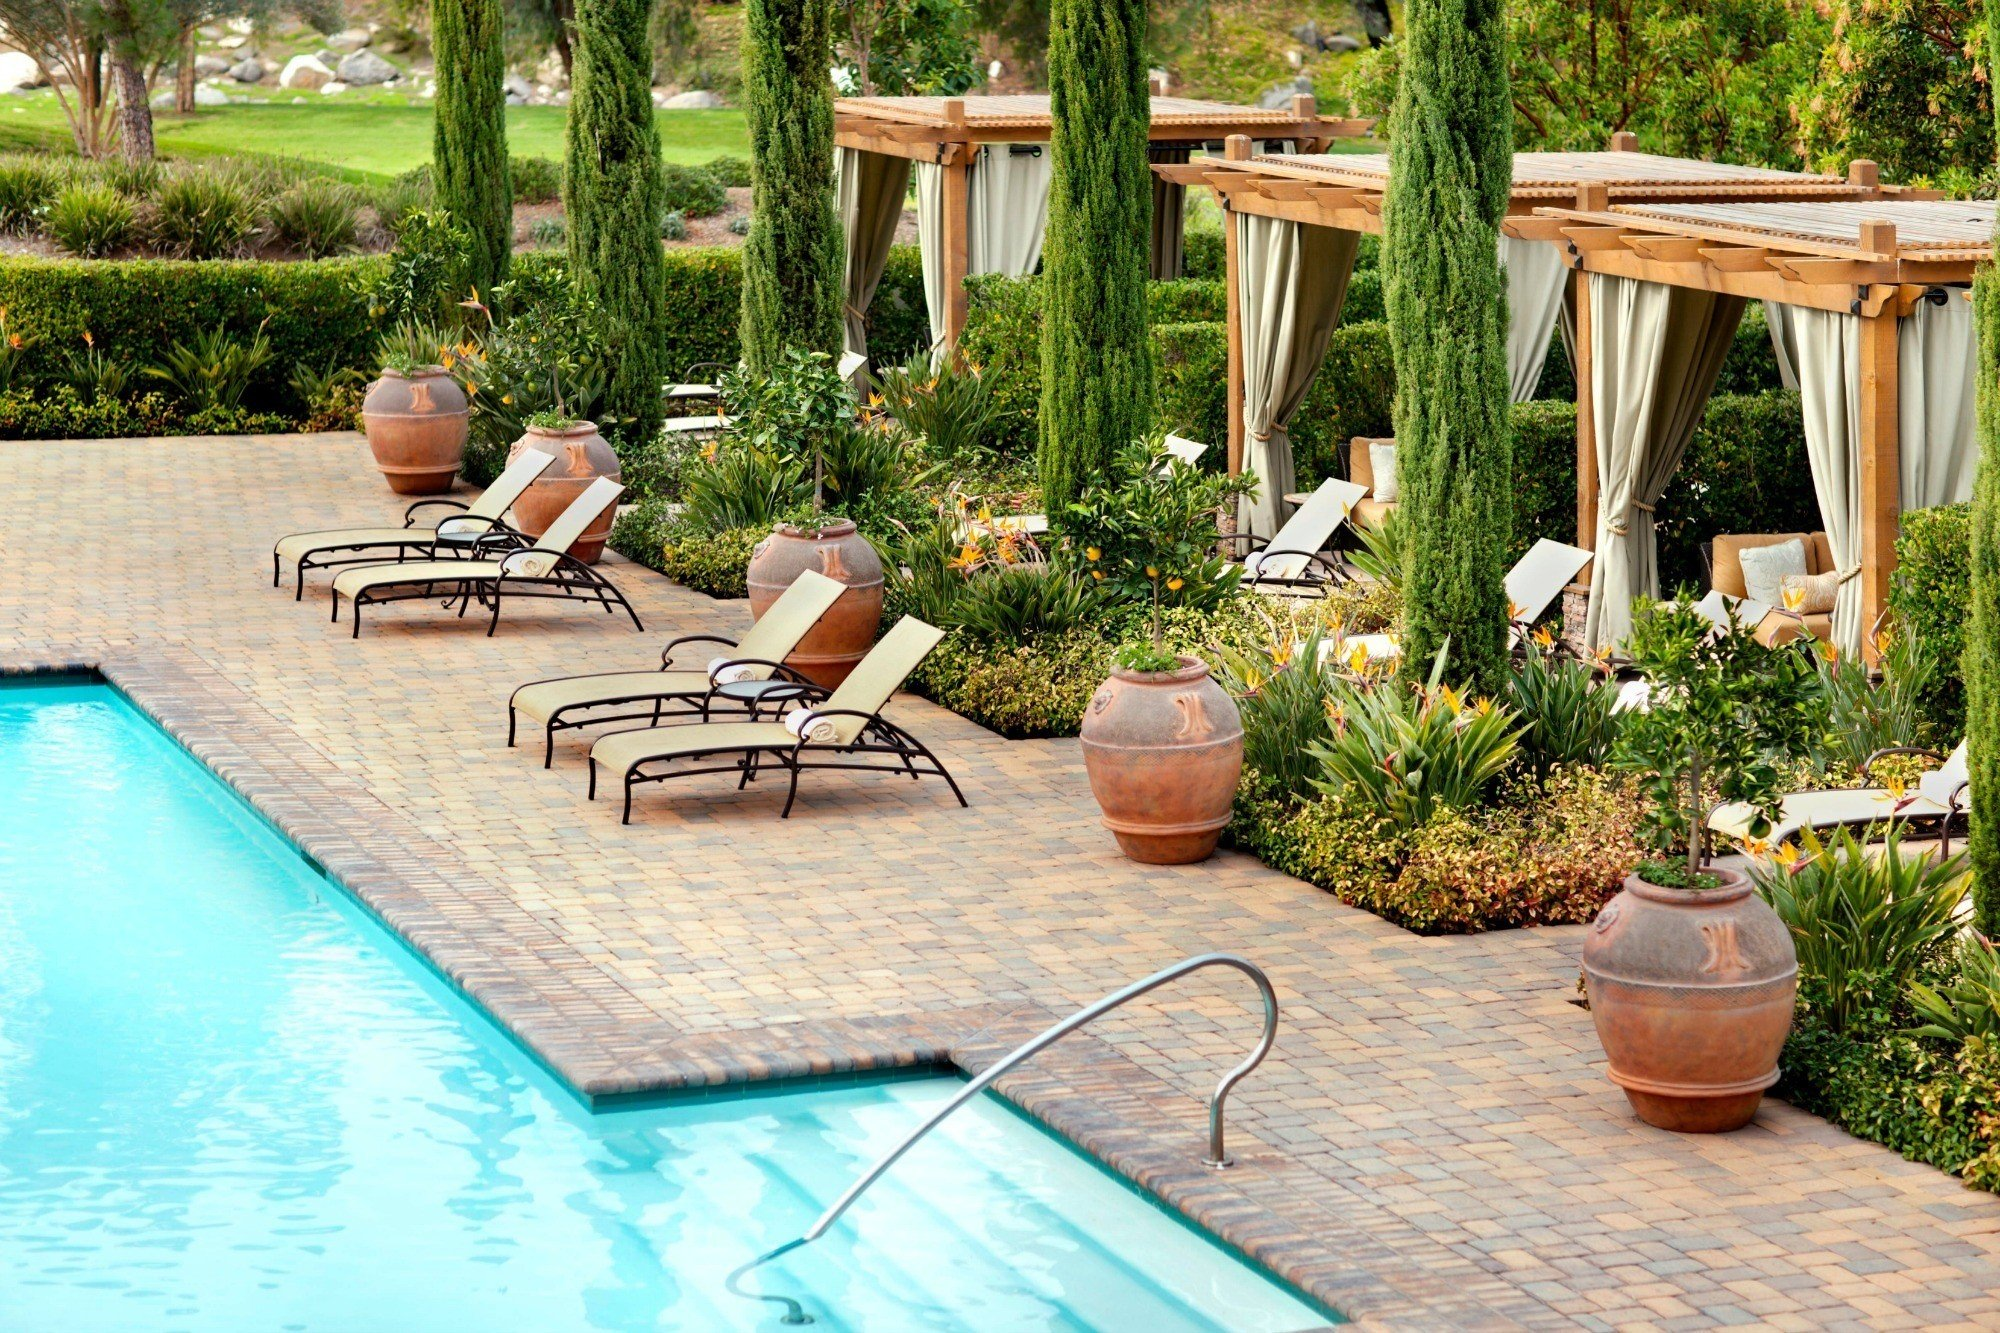 The spa pool at Rancho Bernardo Inn, one of the best luxury resorts in San Diego.